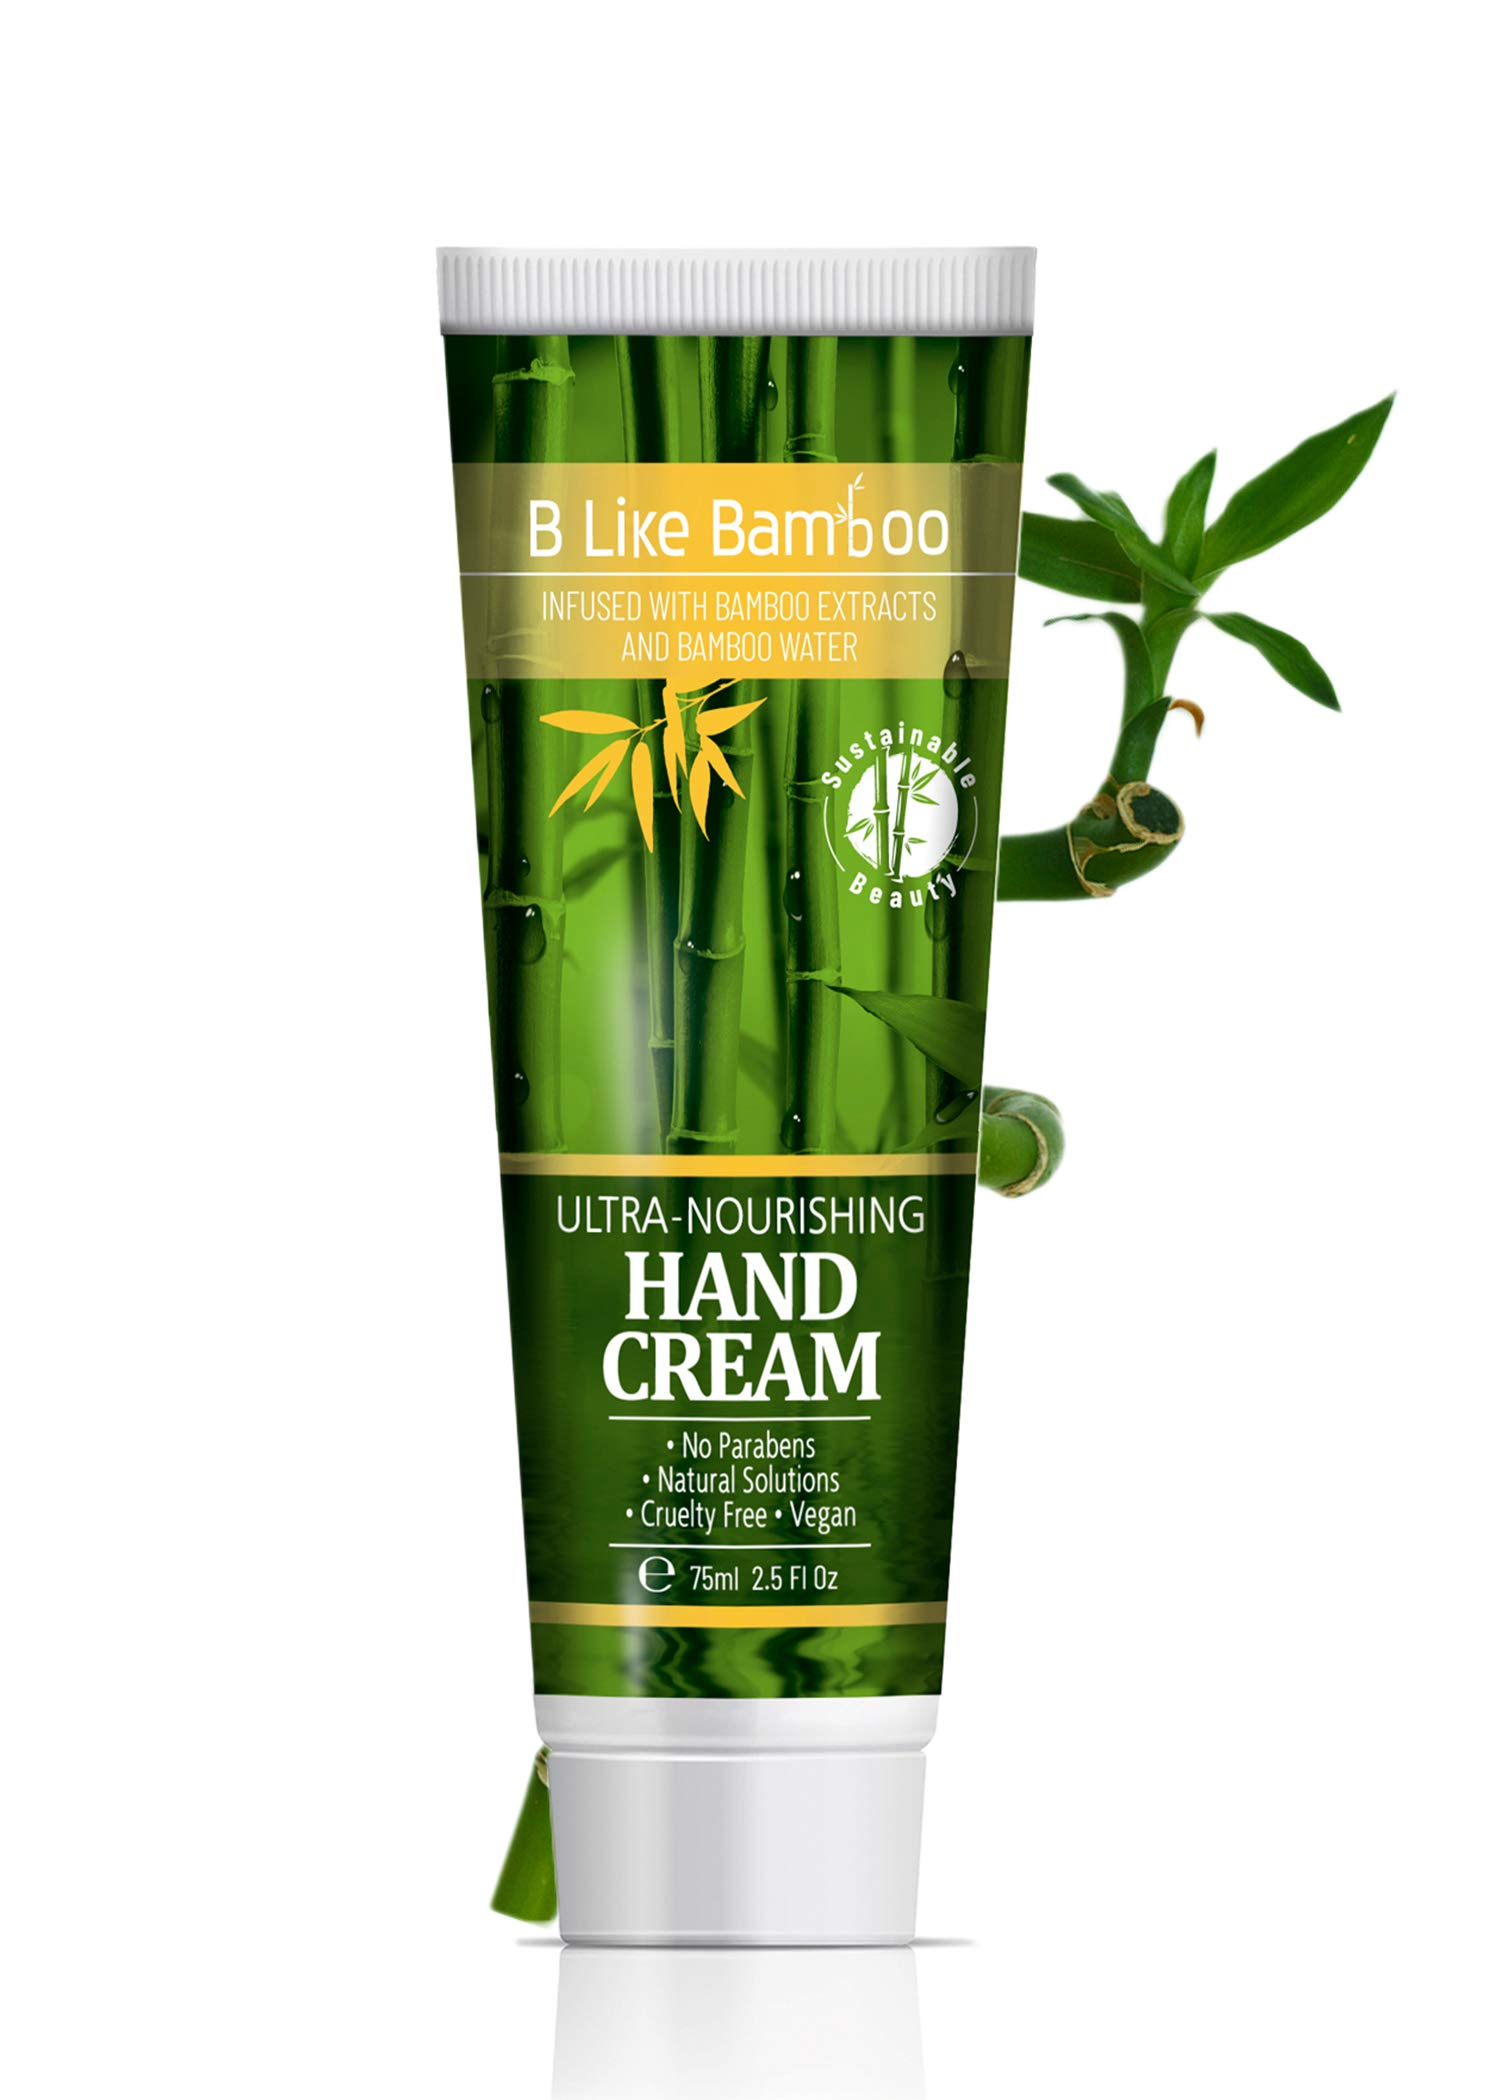 B Like Bamboo 20% Shea Butter Hand Cream with Argan Oil   Ultra Nourishing Natural Moisturizing Lotion   Ultra Rich   Repairing Dry Hands   Soothing Sensitive Skin   Cruelty Free 75ml (2.5 oz)